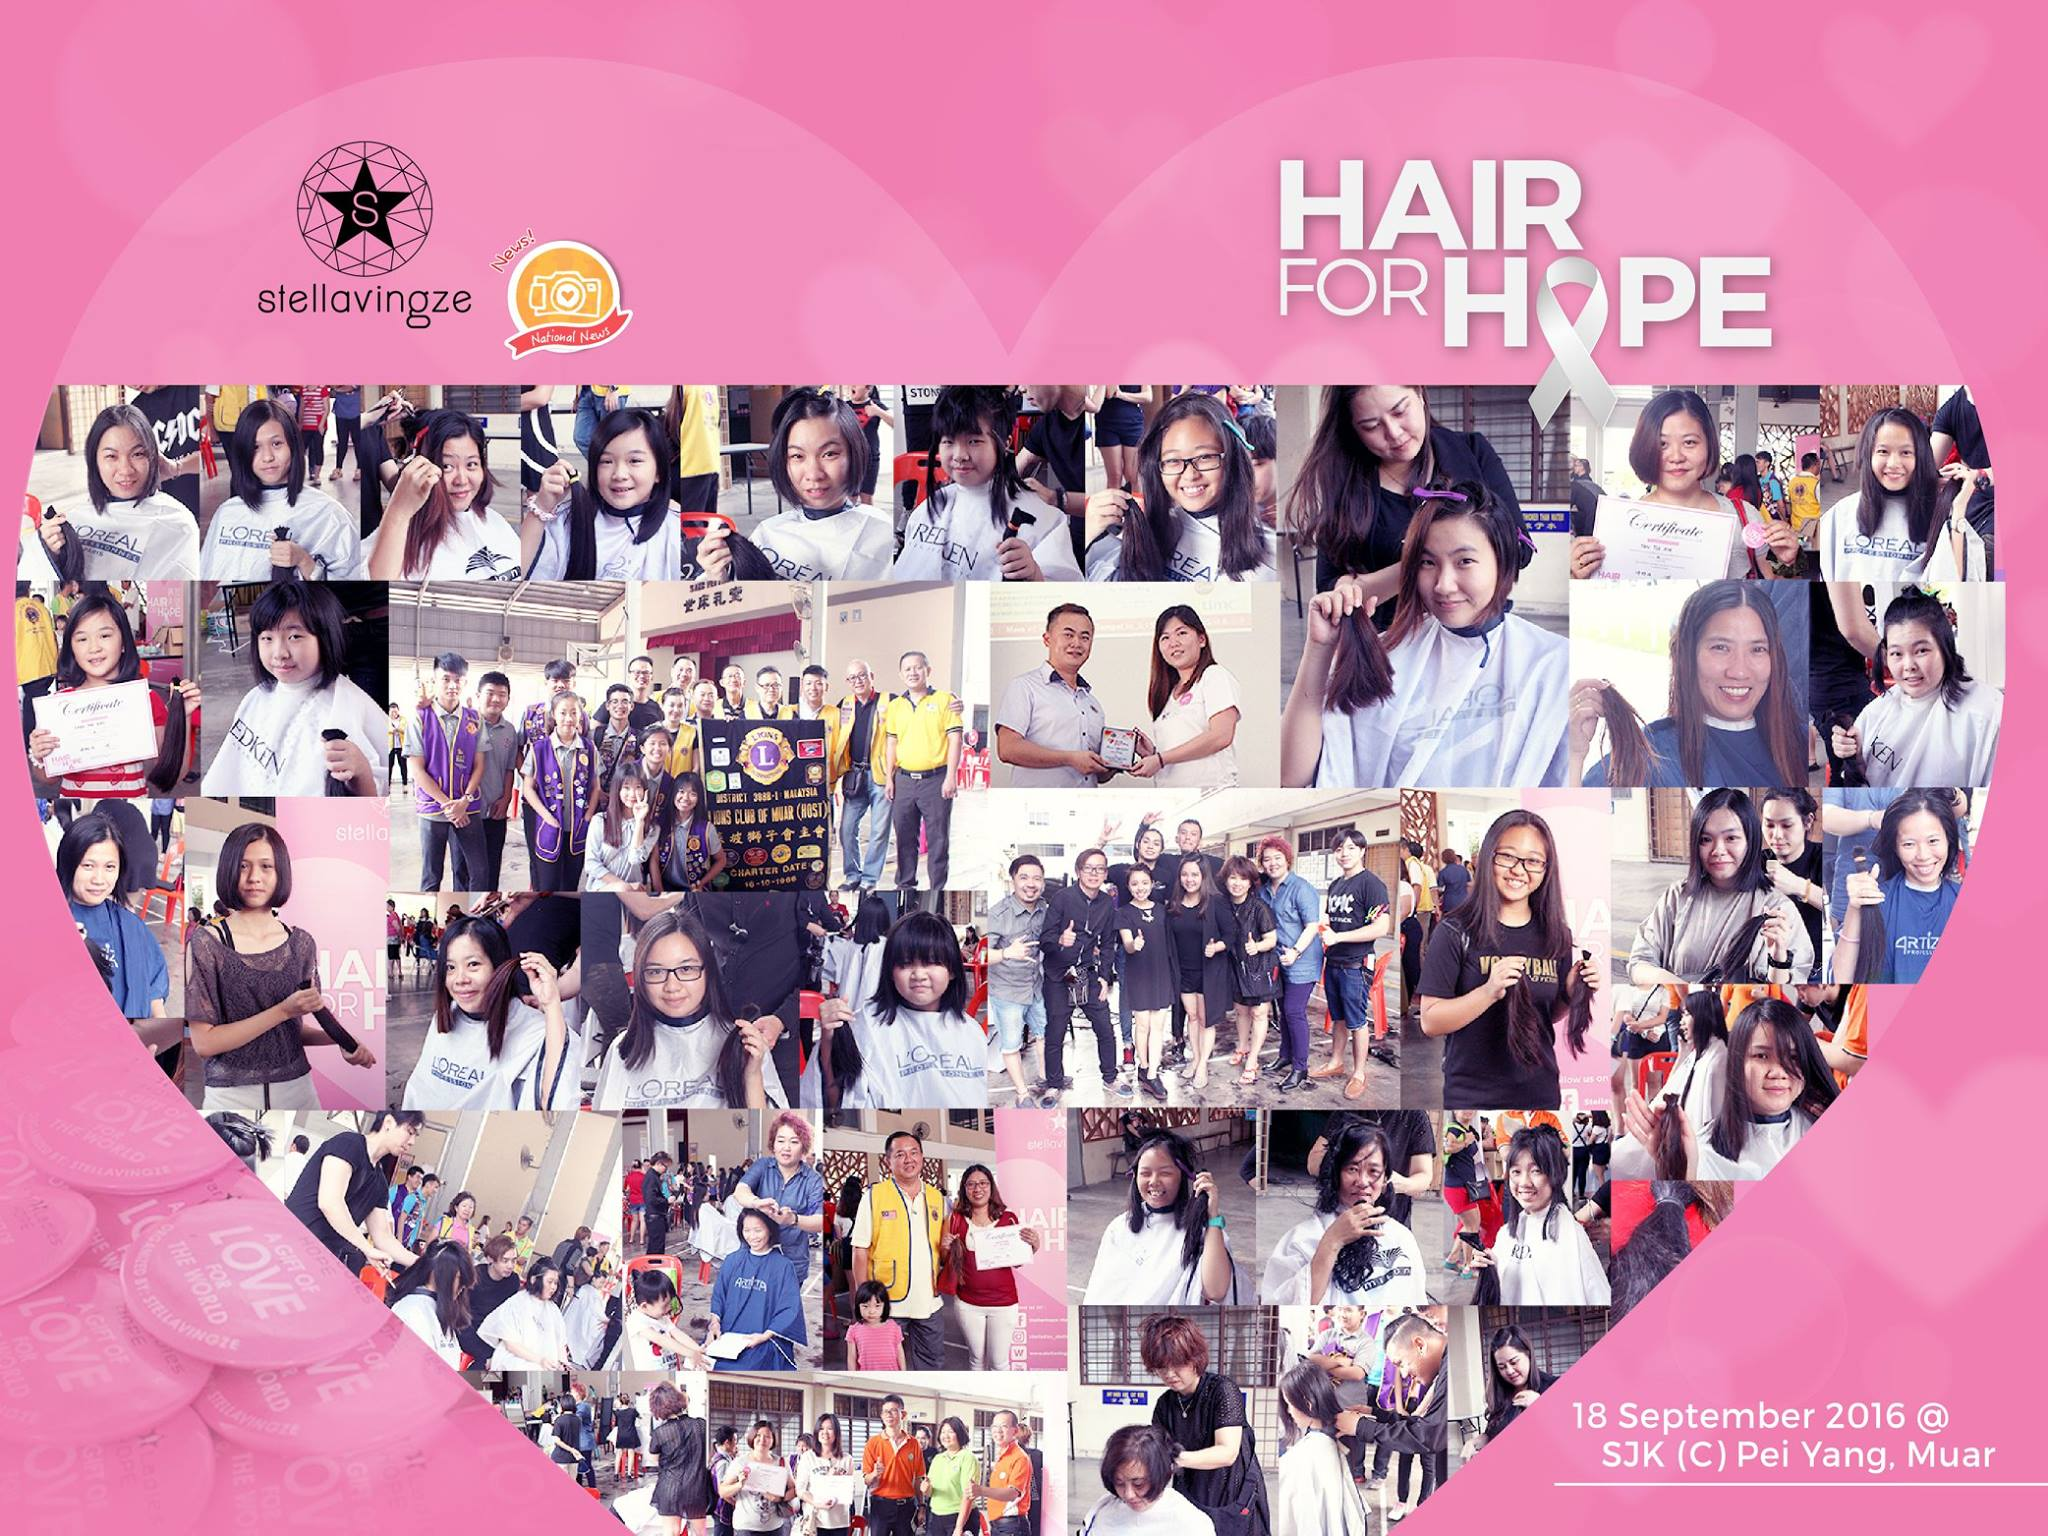 HAIR FOR HOPE. SJK (C) Pei Yang, Muar |    Hair for Hope arrived at SJK (C) Pei Yang, Muar. This time, Stellavingze International collaborated with Lions Club in conjunction of its 100th year anniversary. Total of 119 girls donated their beautiful hair to the cancer patients who are battling with cancer and lose their hair as a result of chemotherapy. We are both excited and grateful to see many young hair donors who showed an act of kindness by donating their hair in hope that it will send a message to all cancer patients that they wholeheartedly support their battle with cancer and pray for them to get well soon. Million thanks to Lions Club Malaysia for initiating the hair donation campaign. We encourage more organizations to carry out a mission similar to Lions Club Malaysia in providing a better future for the world. Hair for Hope mission is not just to raise the awareness of cancer we also hope that this event would educate children and parents that caring for others is indeed a noble job.  Special thanks to hairstylists: 1. LA' Hair  2. Top AMS Hair Studio 3. Peanut Hair Beauty Saloon 4. Paco Hair Studio 5. G Light Studio 6. NEX  7. Hikaro Sitoh 8. 秘密基地